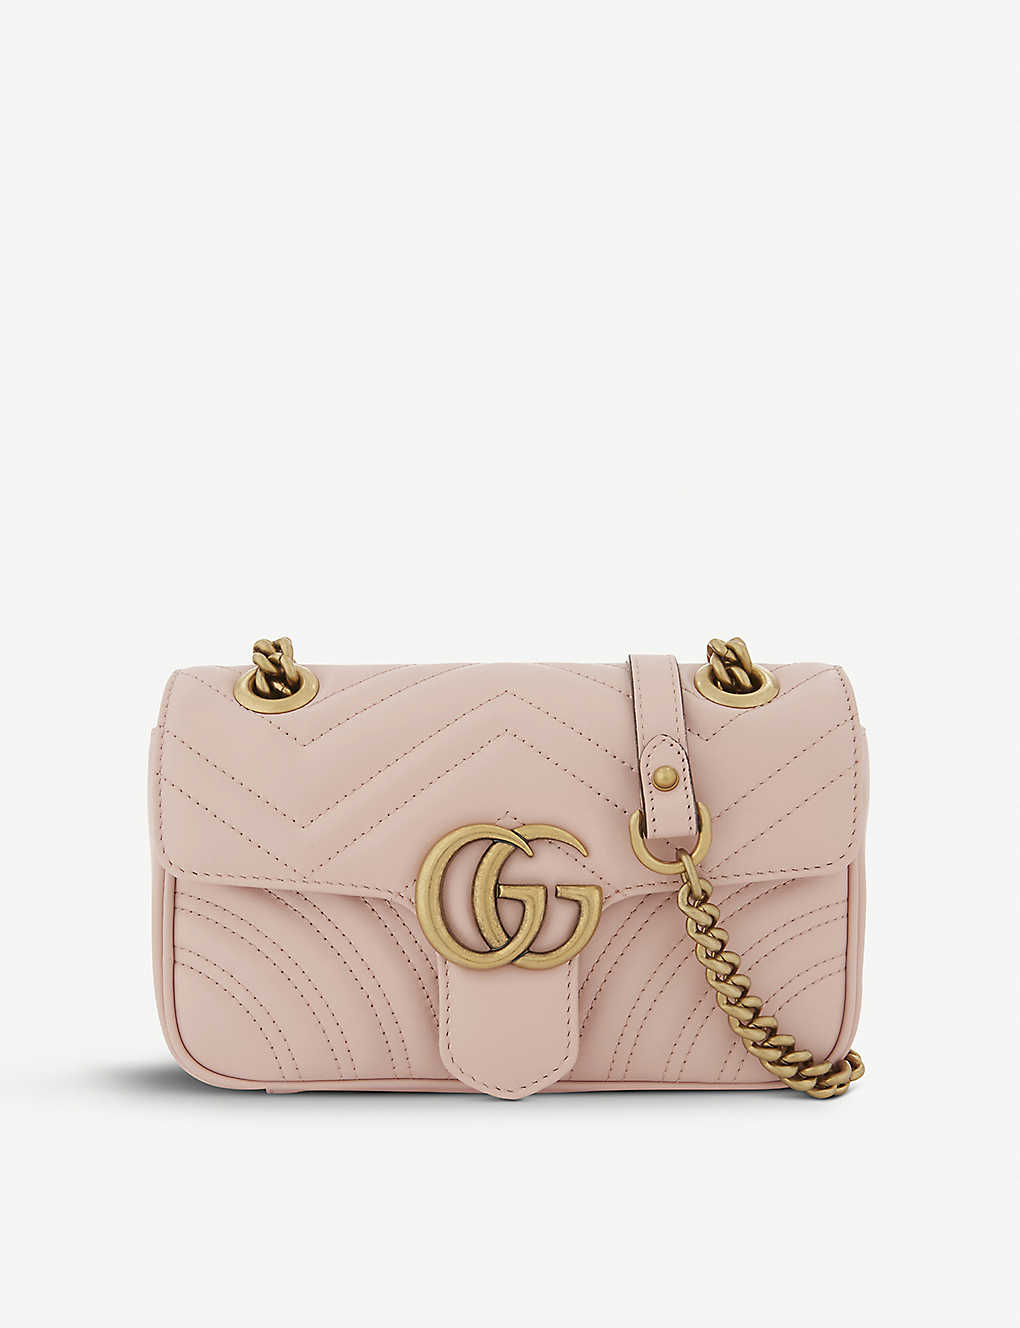 4899f64d9aba GUCCI - Marmont GG mini leather cross-body bag | Selfridges.com